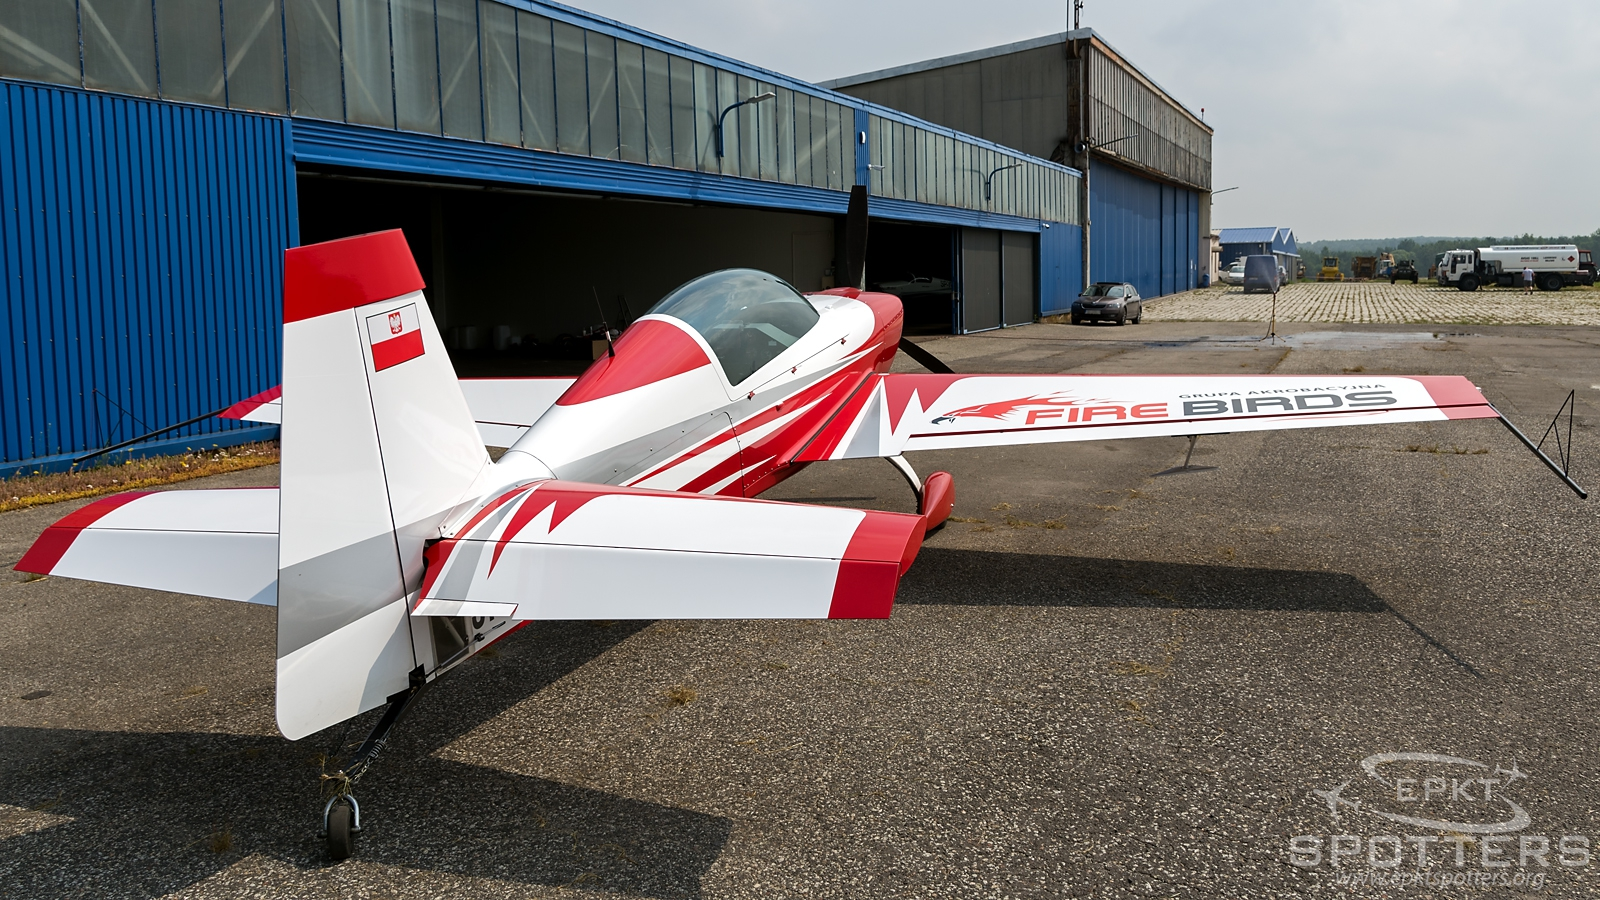 SP-TLA - Extra 330 LC (Private) / Muchowiec - Katowice Poland [EPKM/]